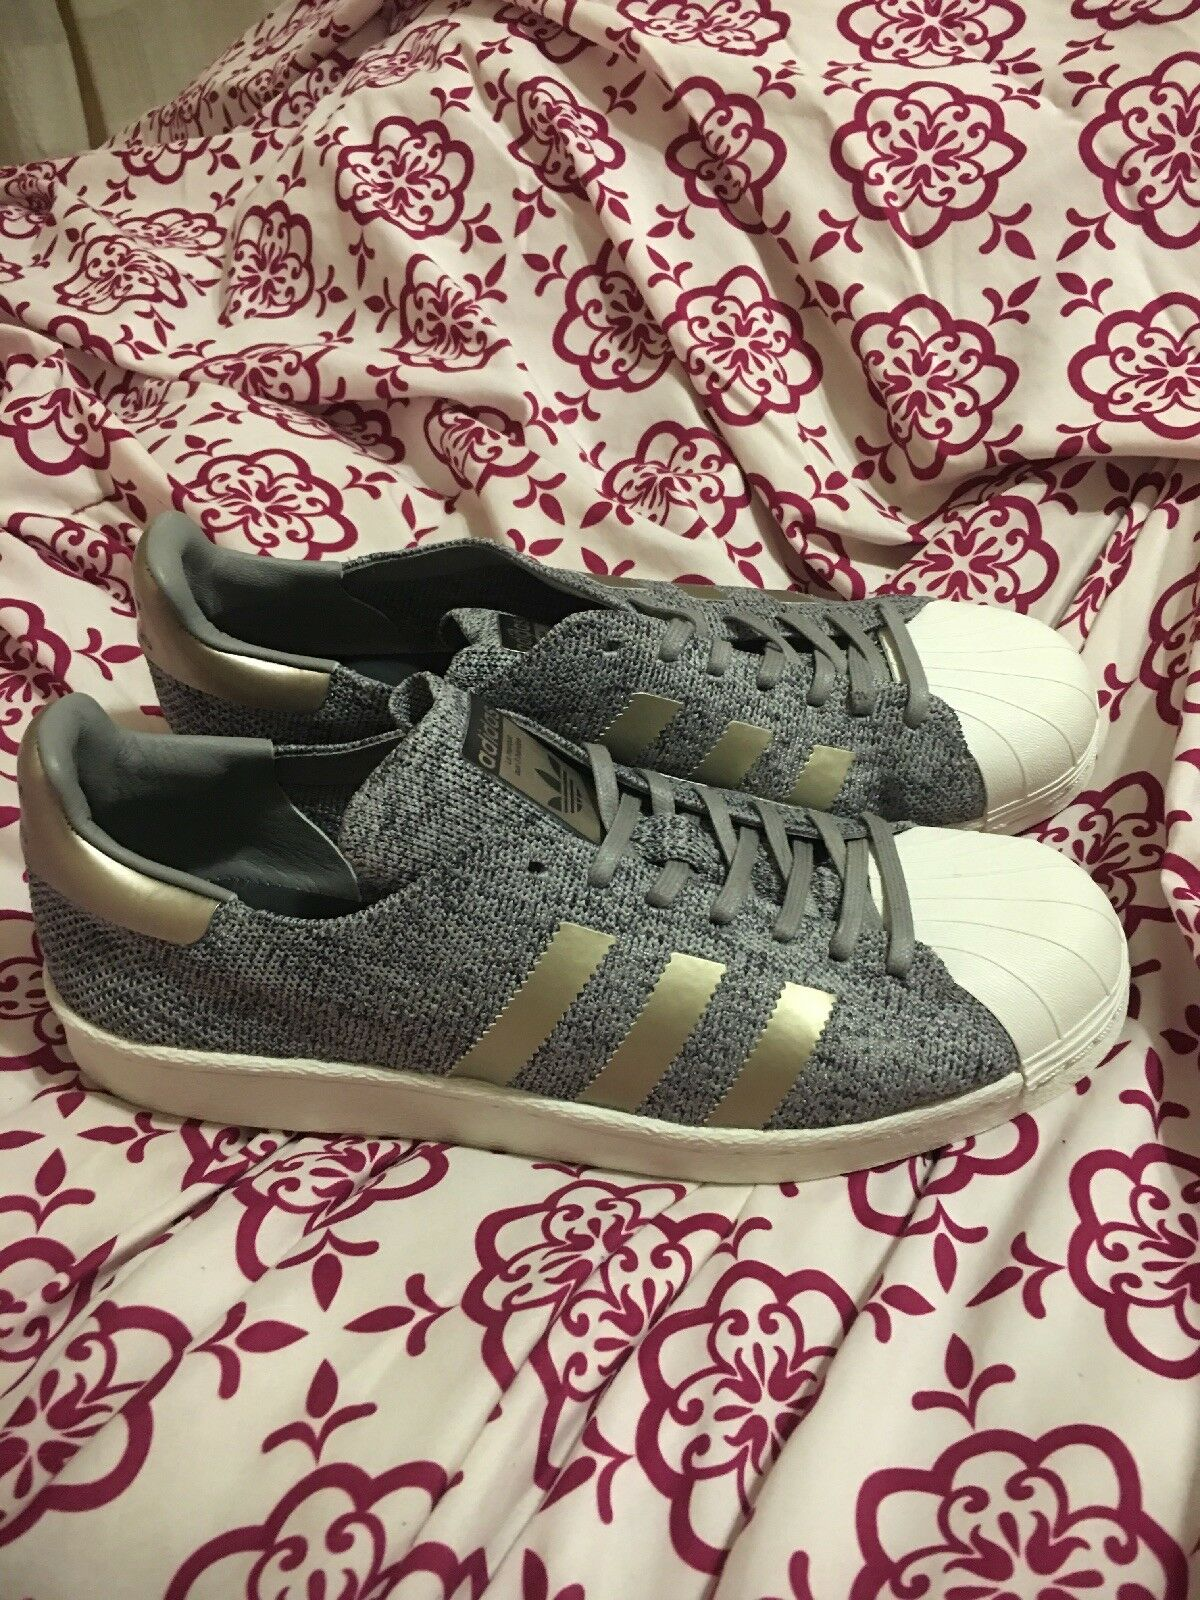 BB8973 New Adidas Superstar Primeknit Boost Solid Grey Charcoal shoes Sz 9.5